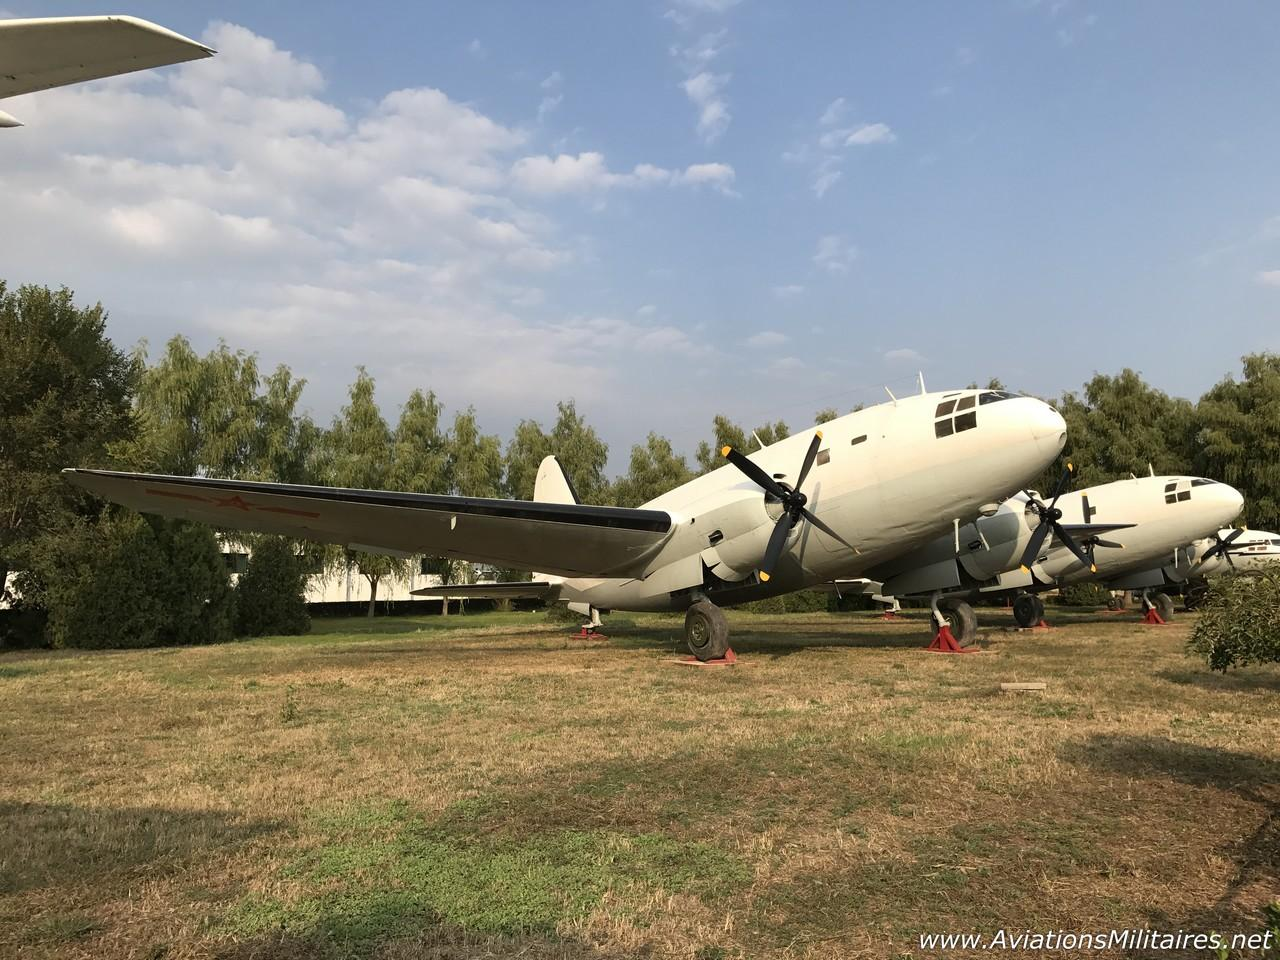 Curtiss C-46 Commando exposé en Chine, par Nico2